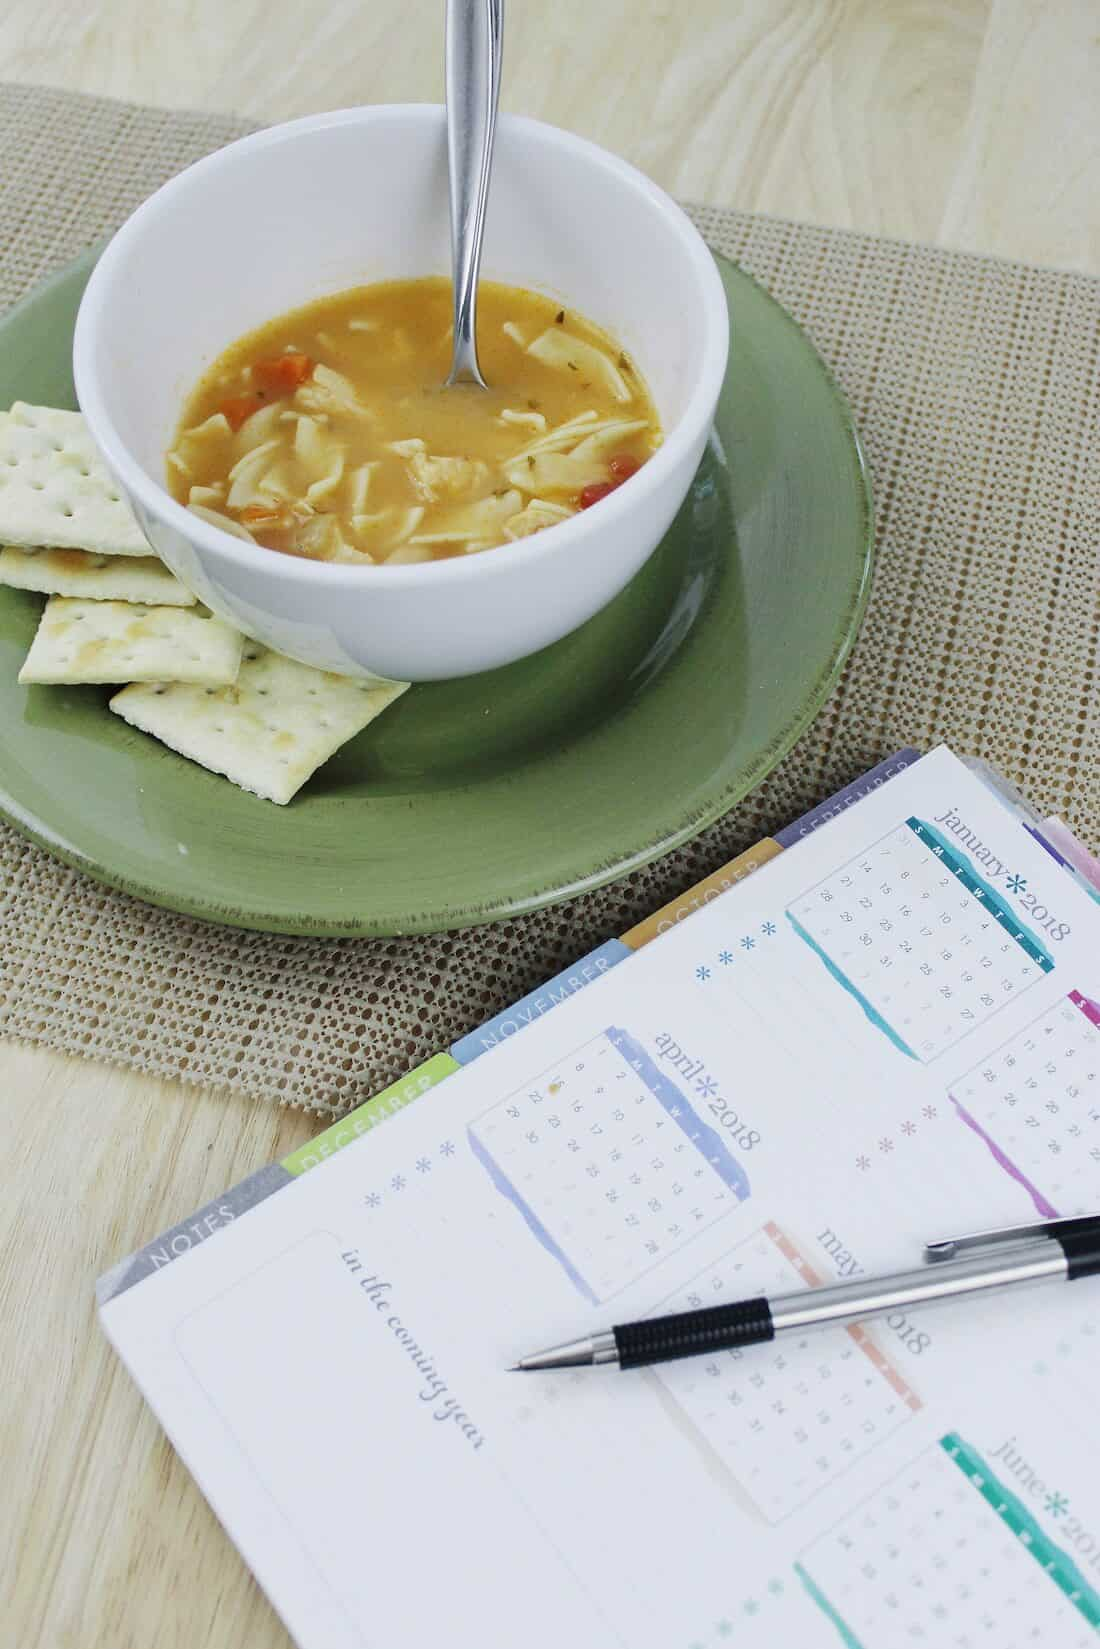 Soup and crackers next to planner and pen.